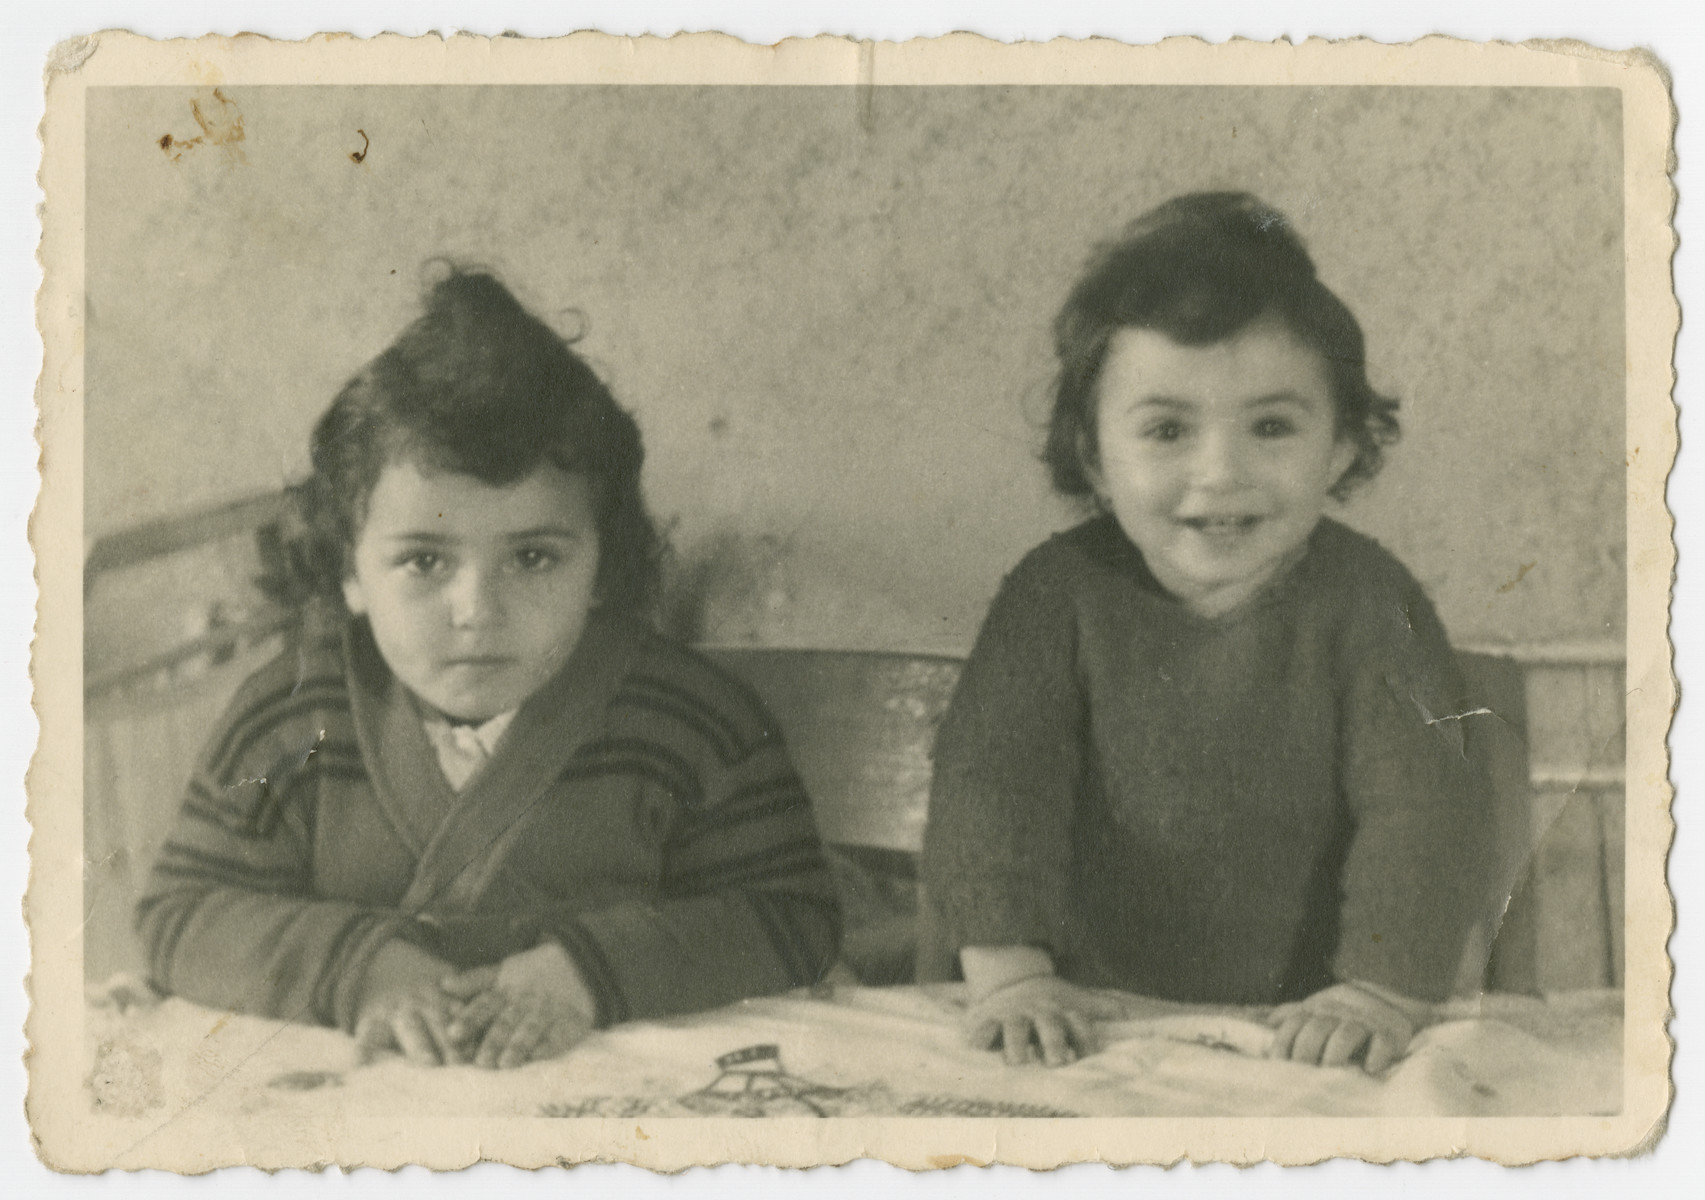 Close-up portrait of sisters Ellen and Rosa Zinger (children of Malka and Abram Zinger) in Belgium, prior returning to the Bergen-Belsen displaced persons camp.